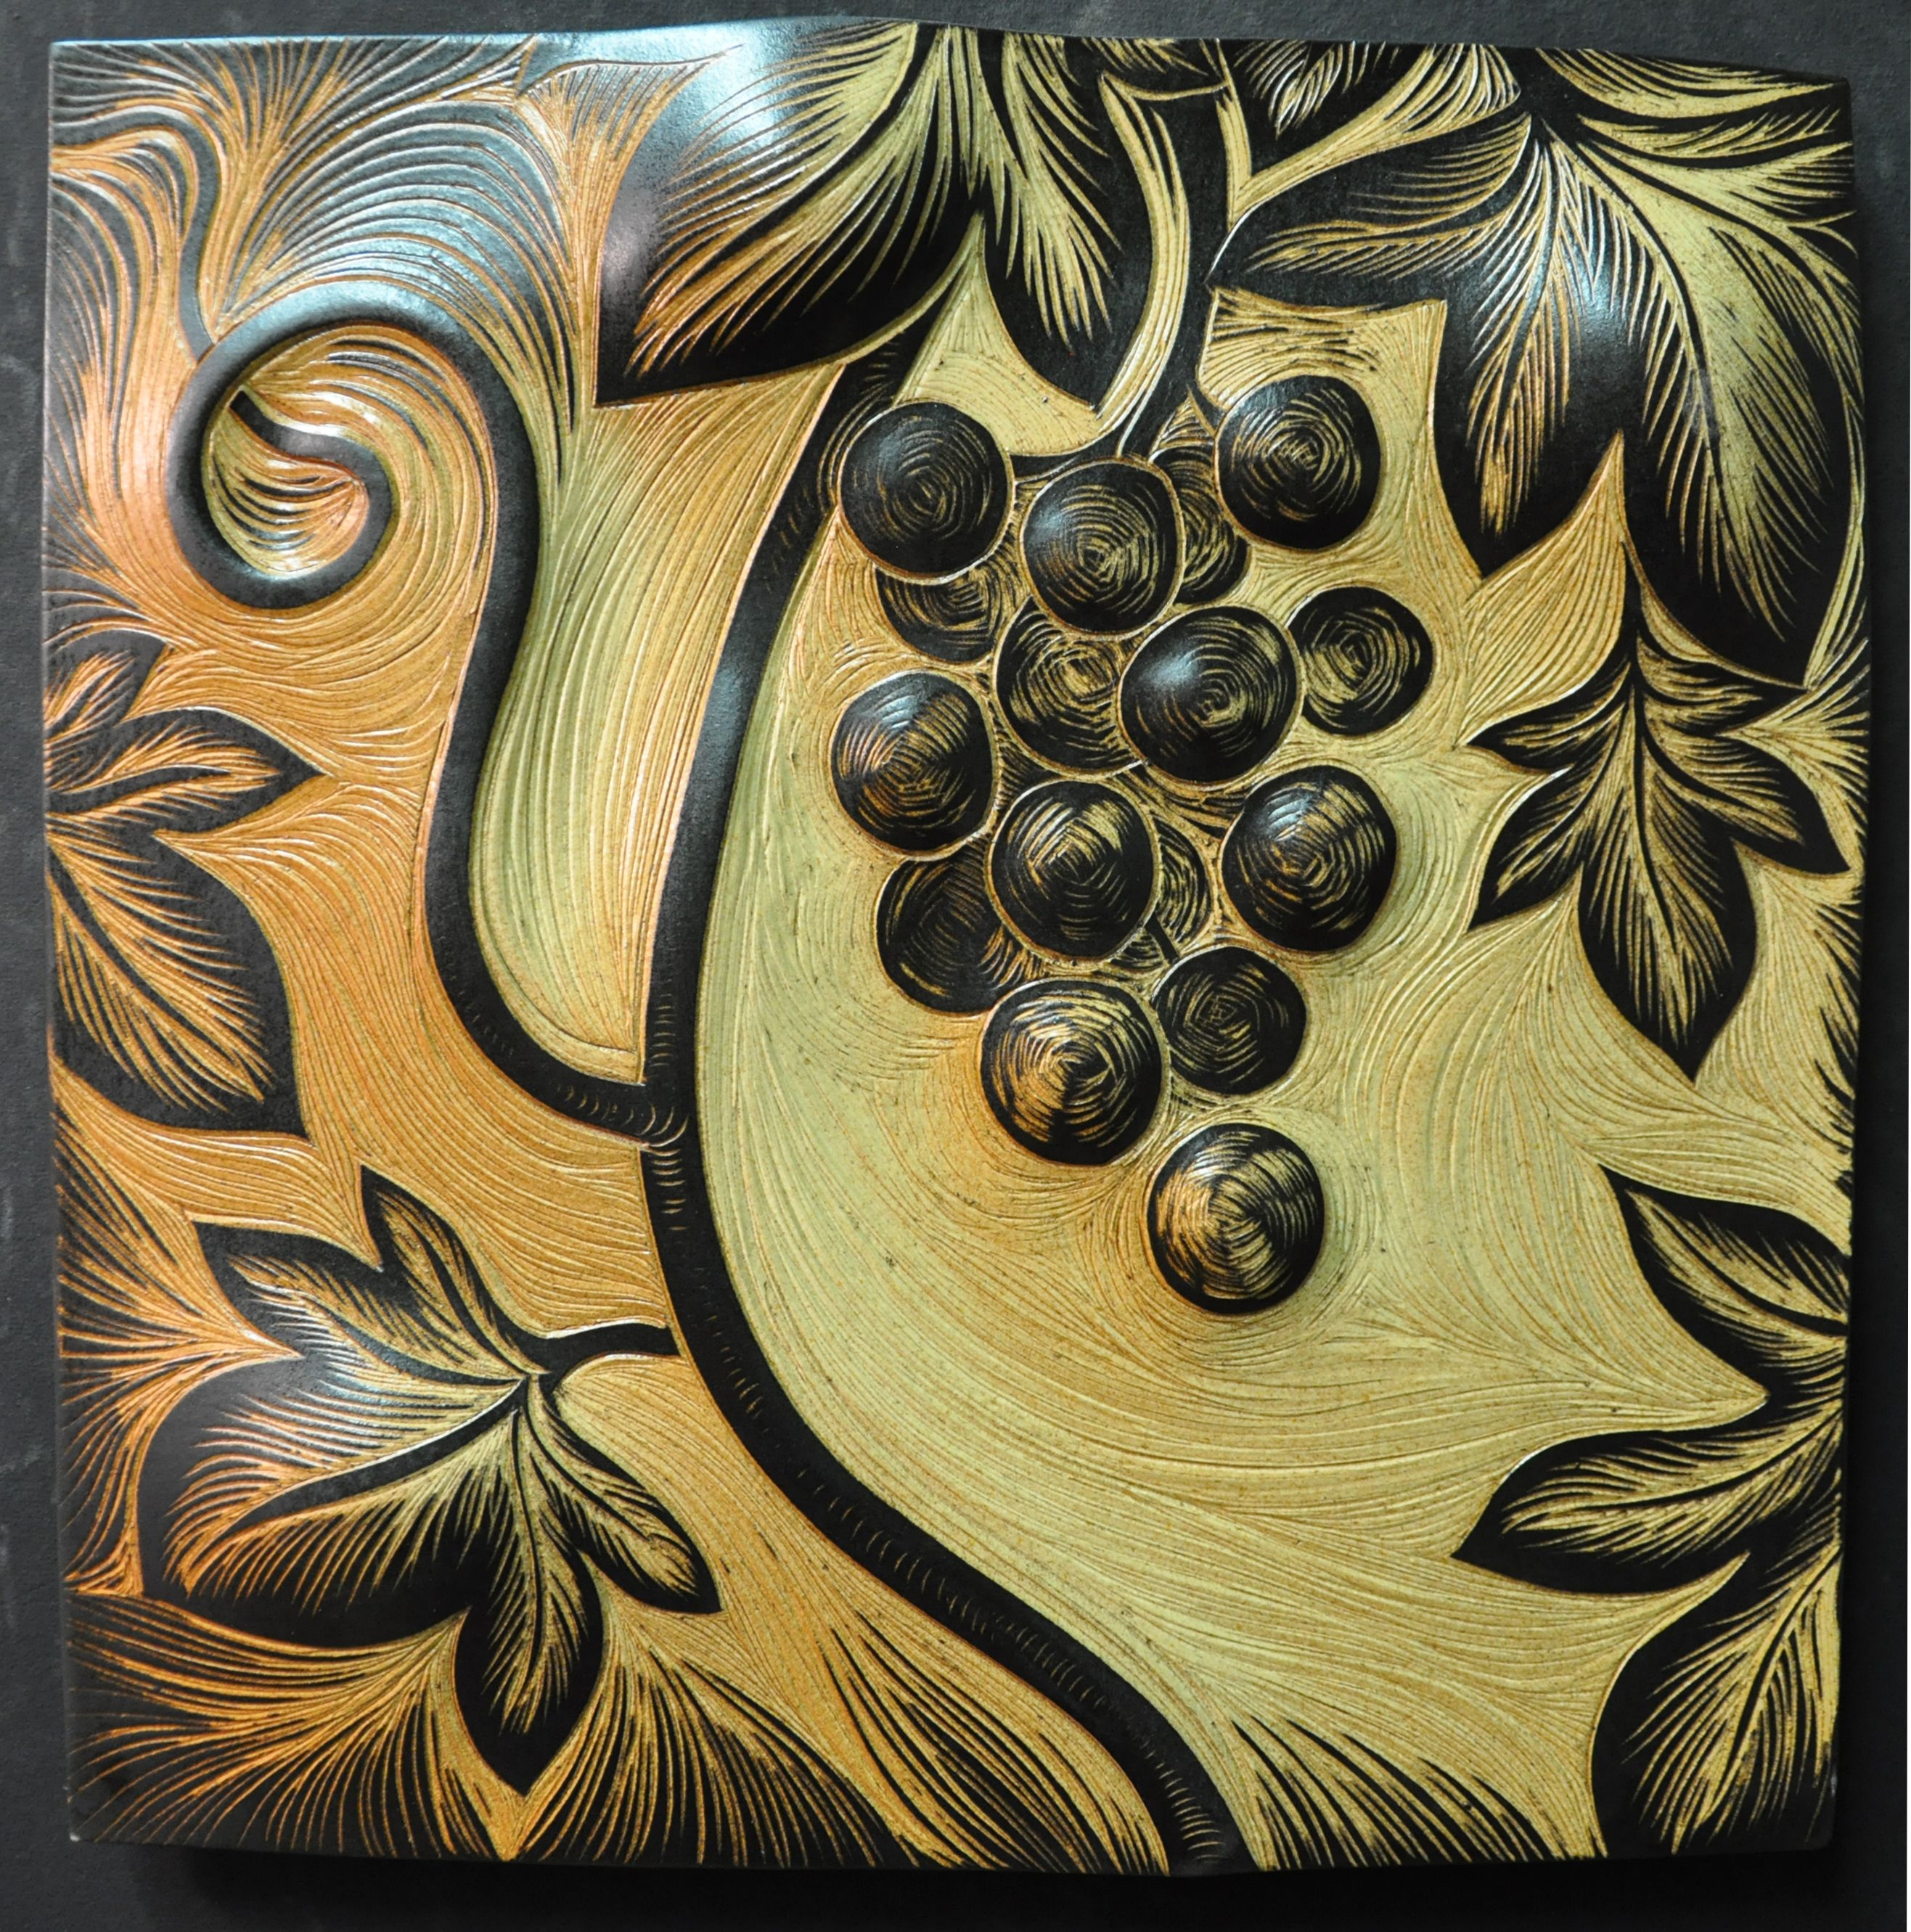 Detail of handmade, sgraffito-carved, ceramic wall tile by Natalie ...